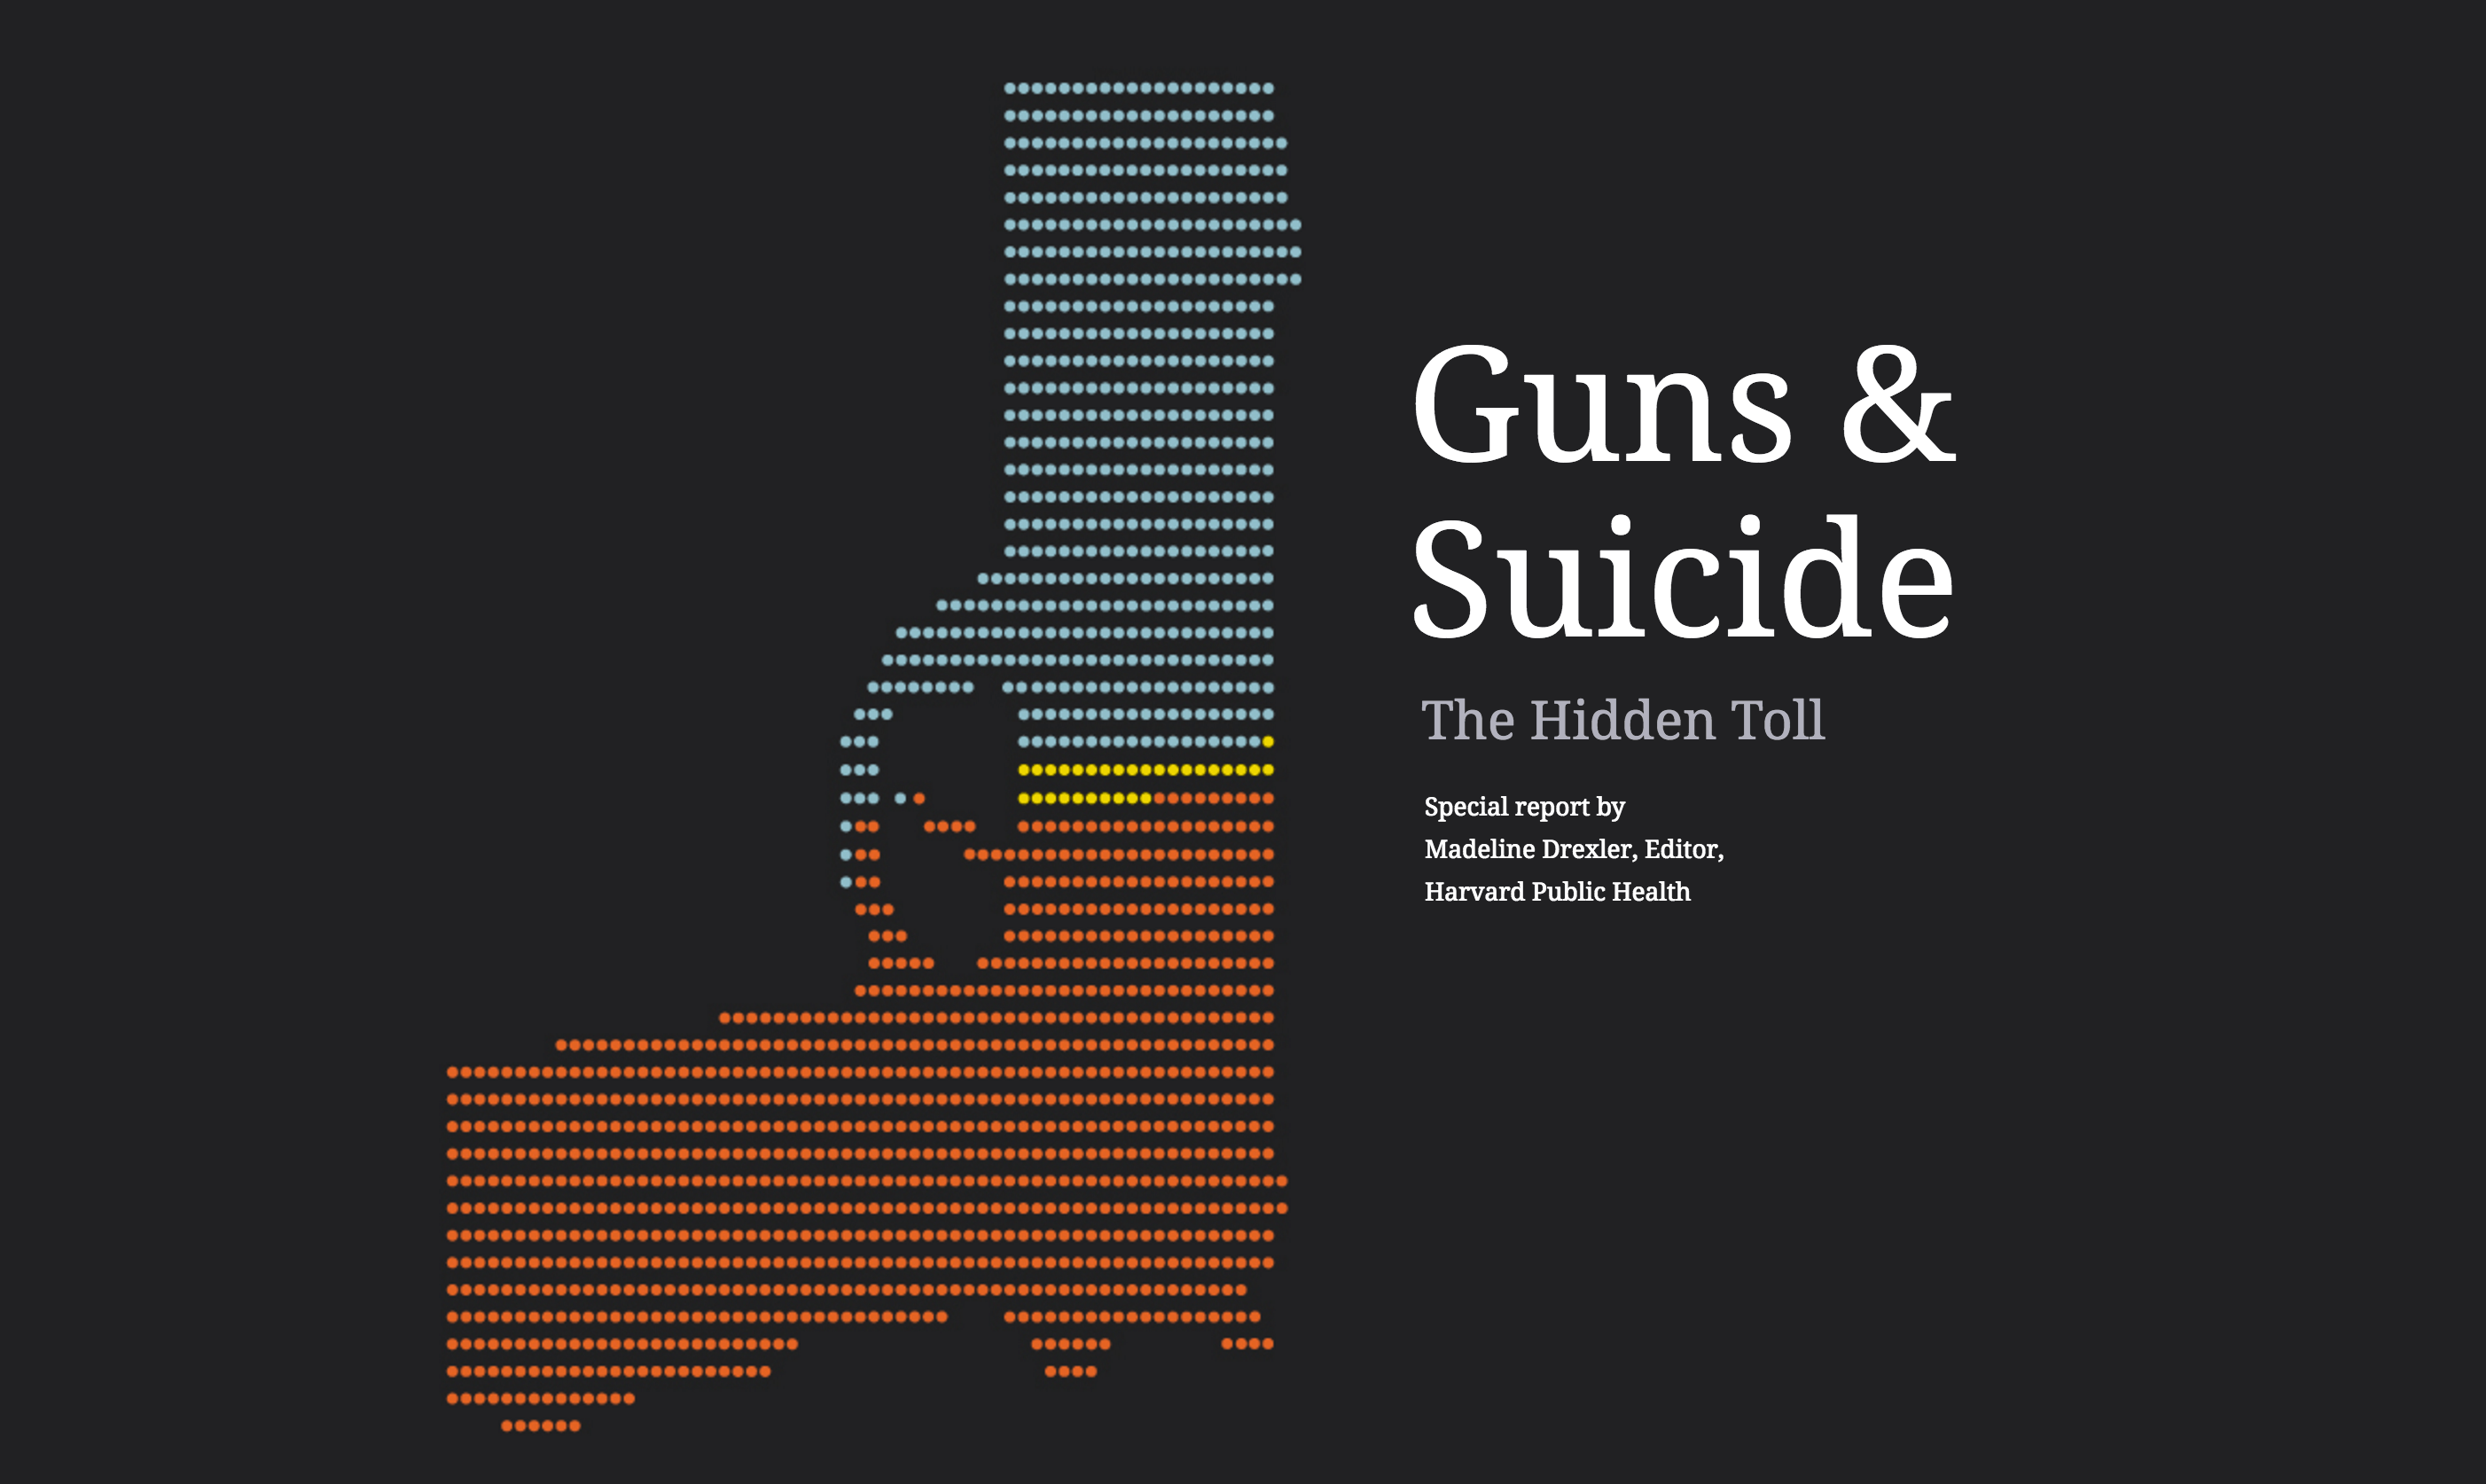 Pro Gun Quotes Guns & Suicide  Harvard Public Health Magazine  Harvard T.h.